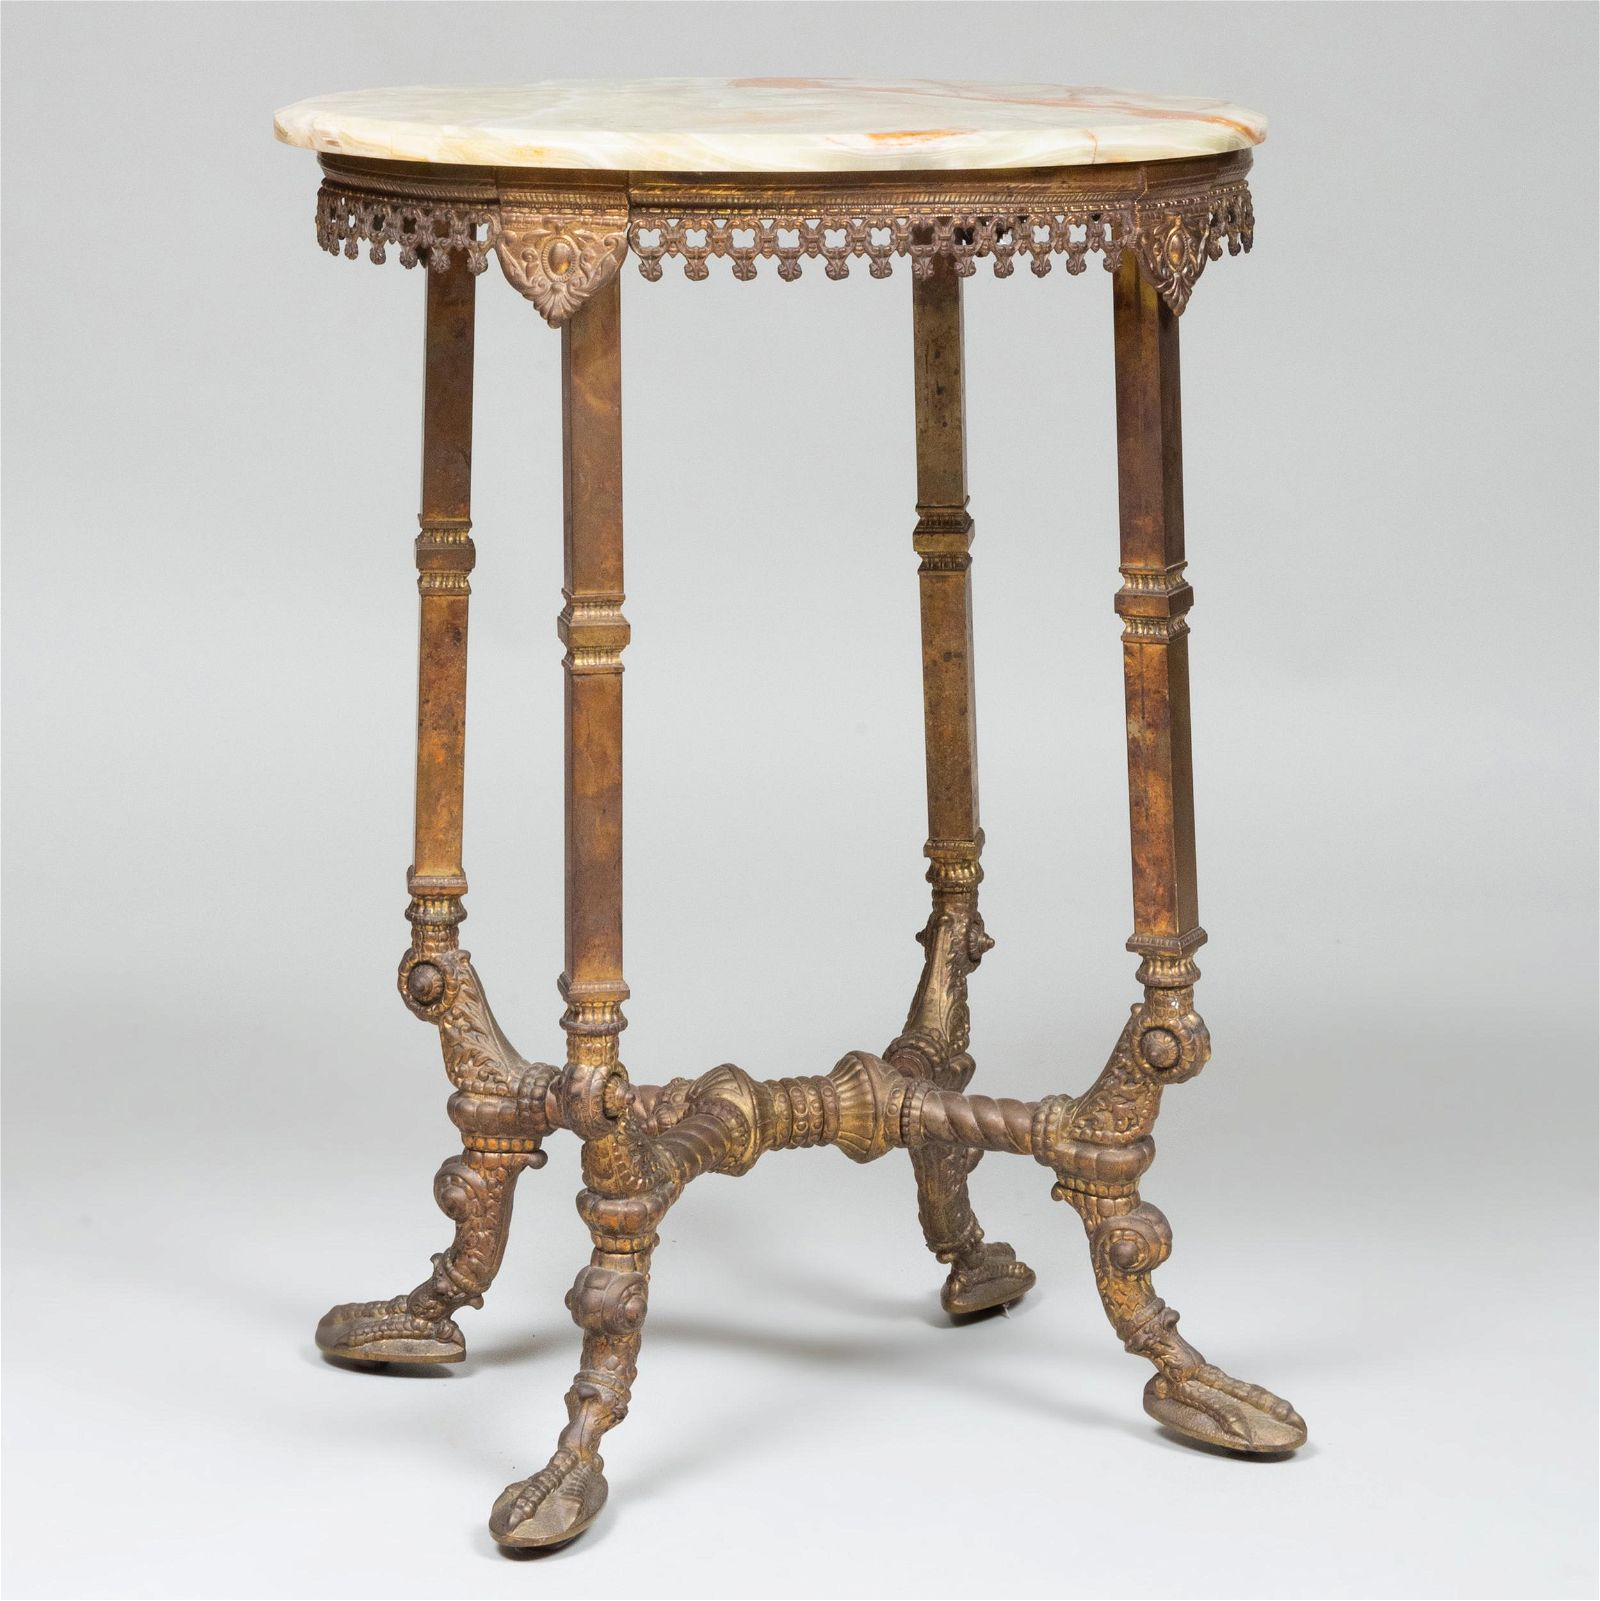 Victorian Gilt-Bronze and Brass Oval Table with Onyx